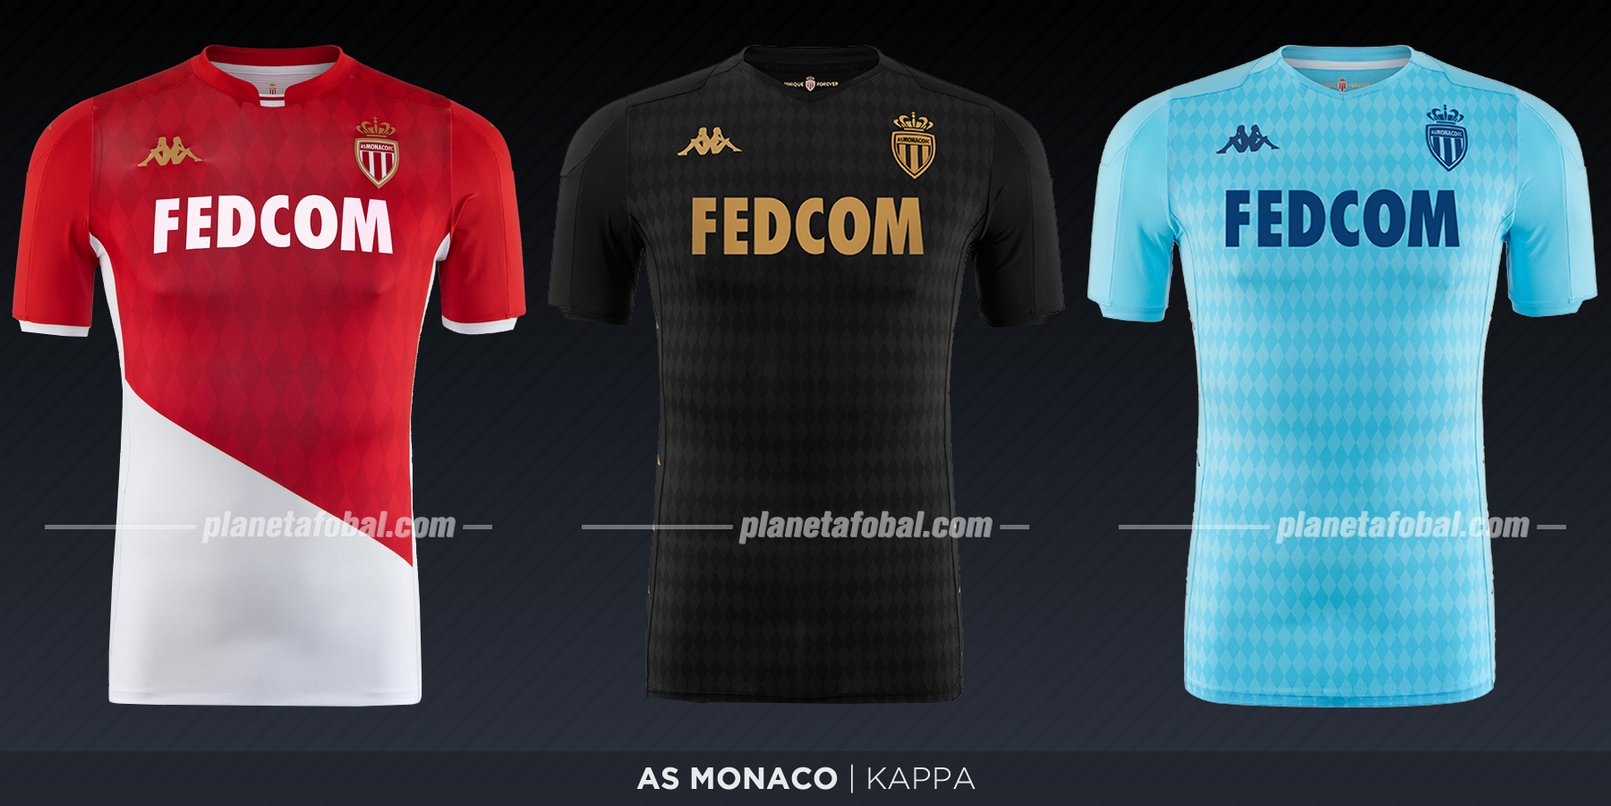 AS Monaco (Kappa) | Camisetas de la Ligue 1 2019-2020